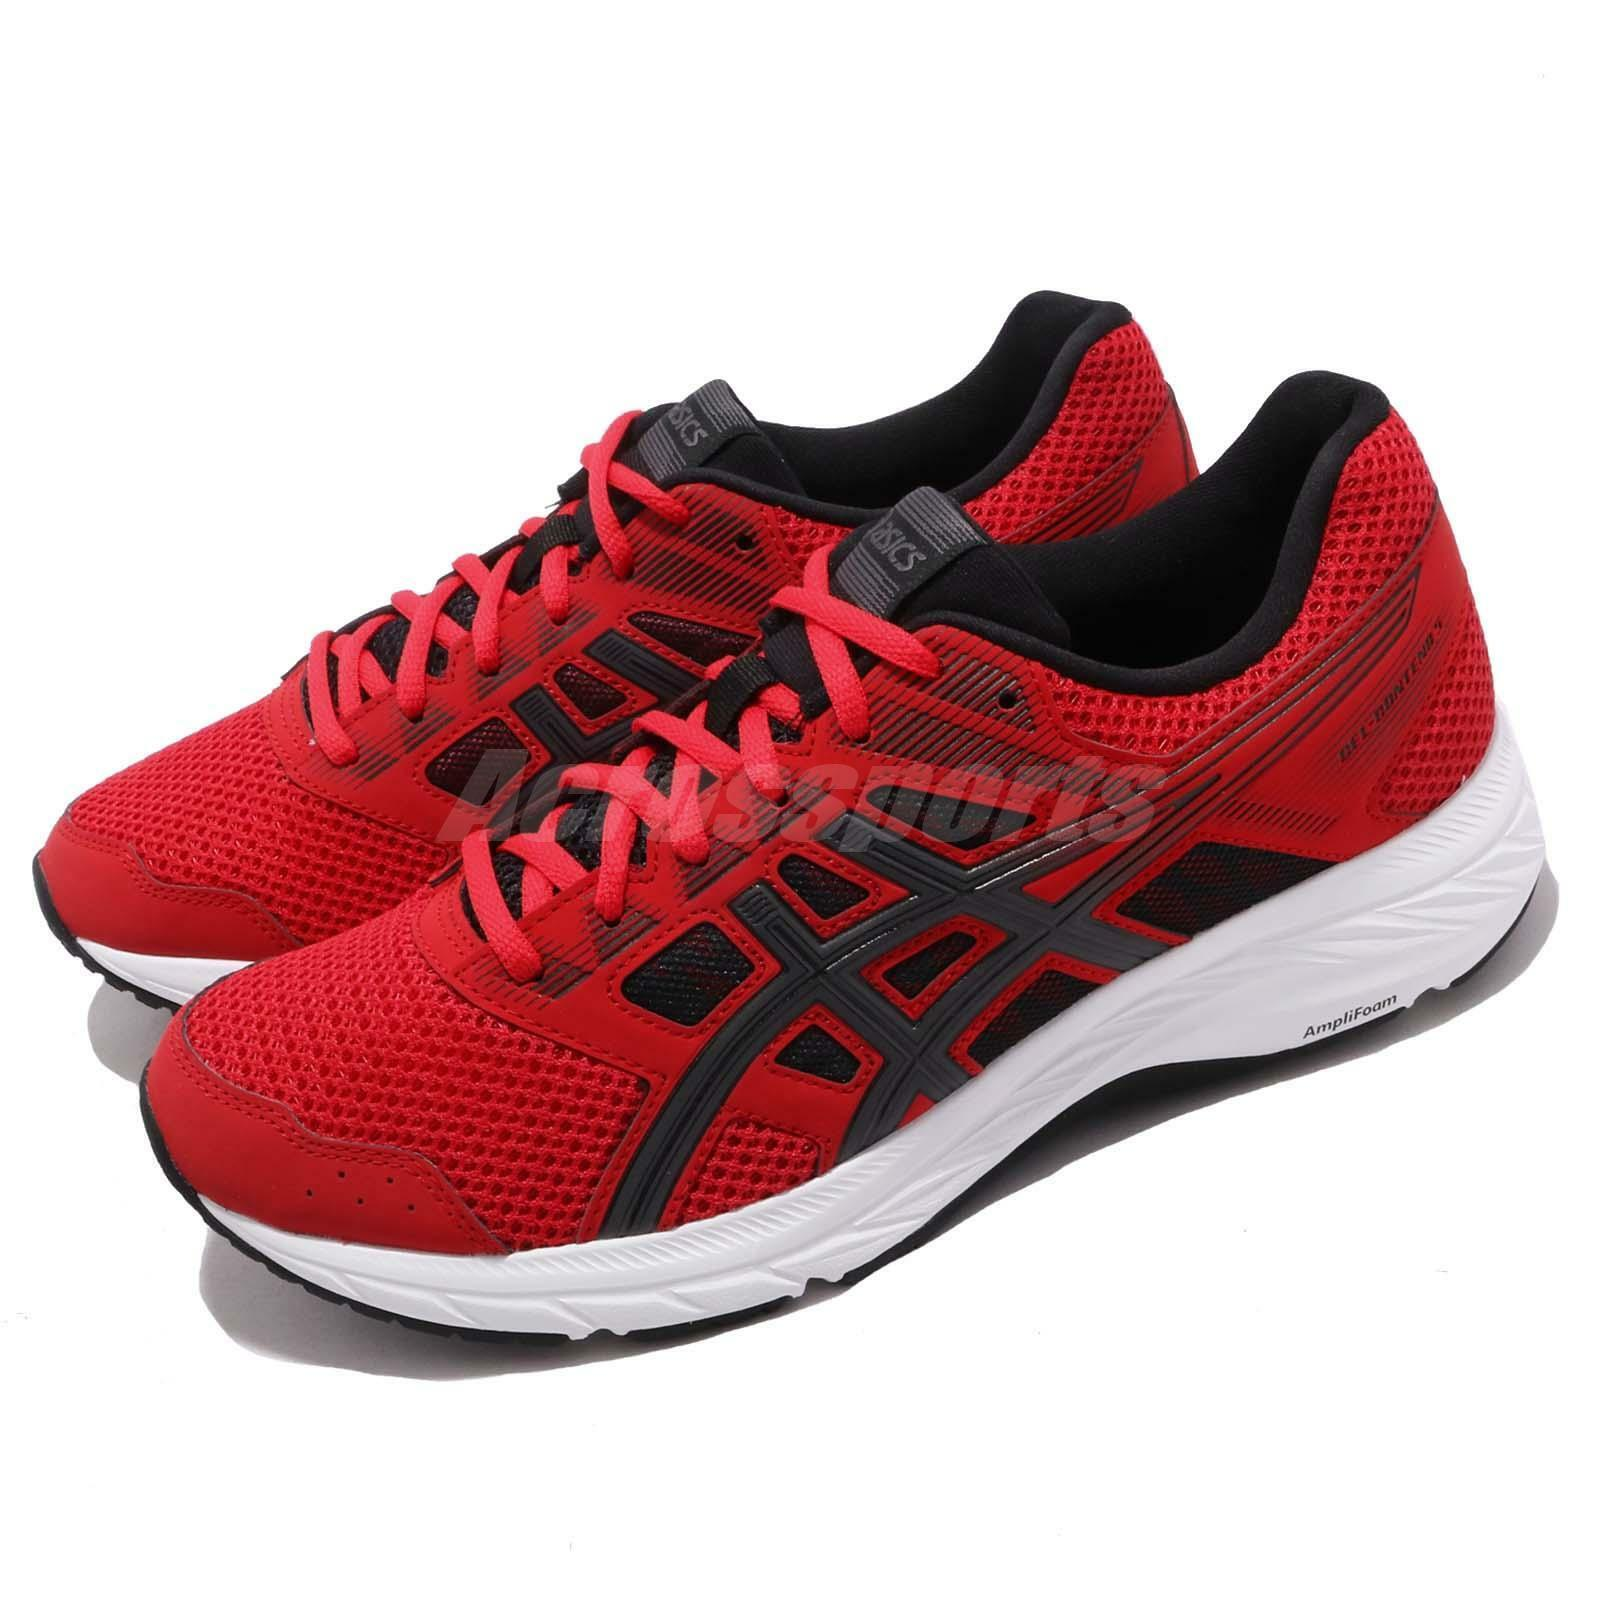 Asics Gel Contend 5 Classic rouge Dark gris Hommes FonctionneHommest chaussures paniers 1011A256-600